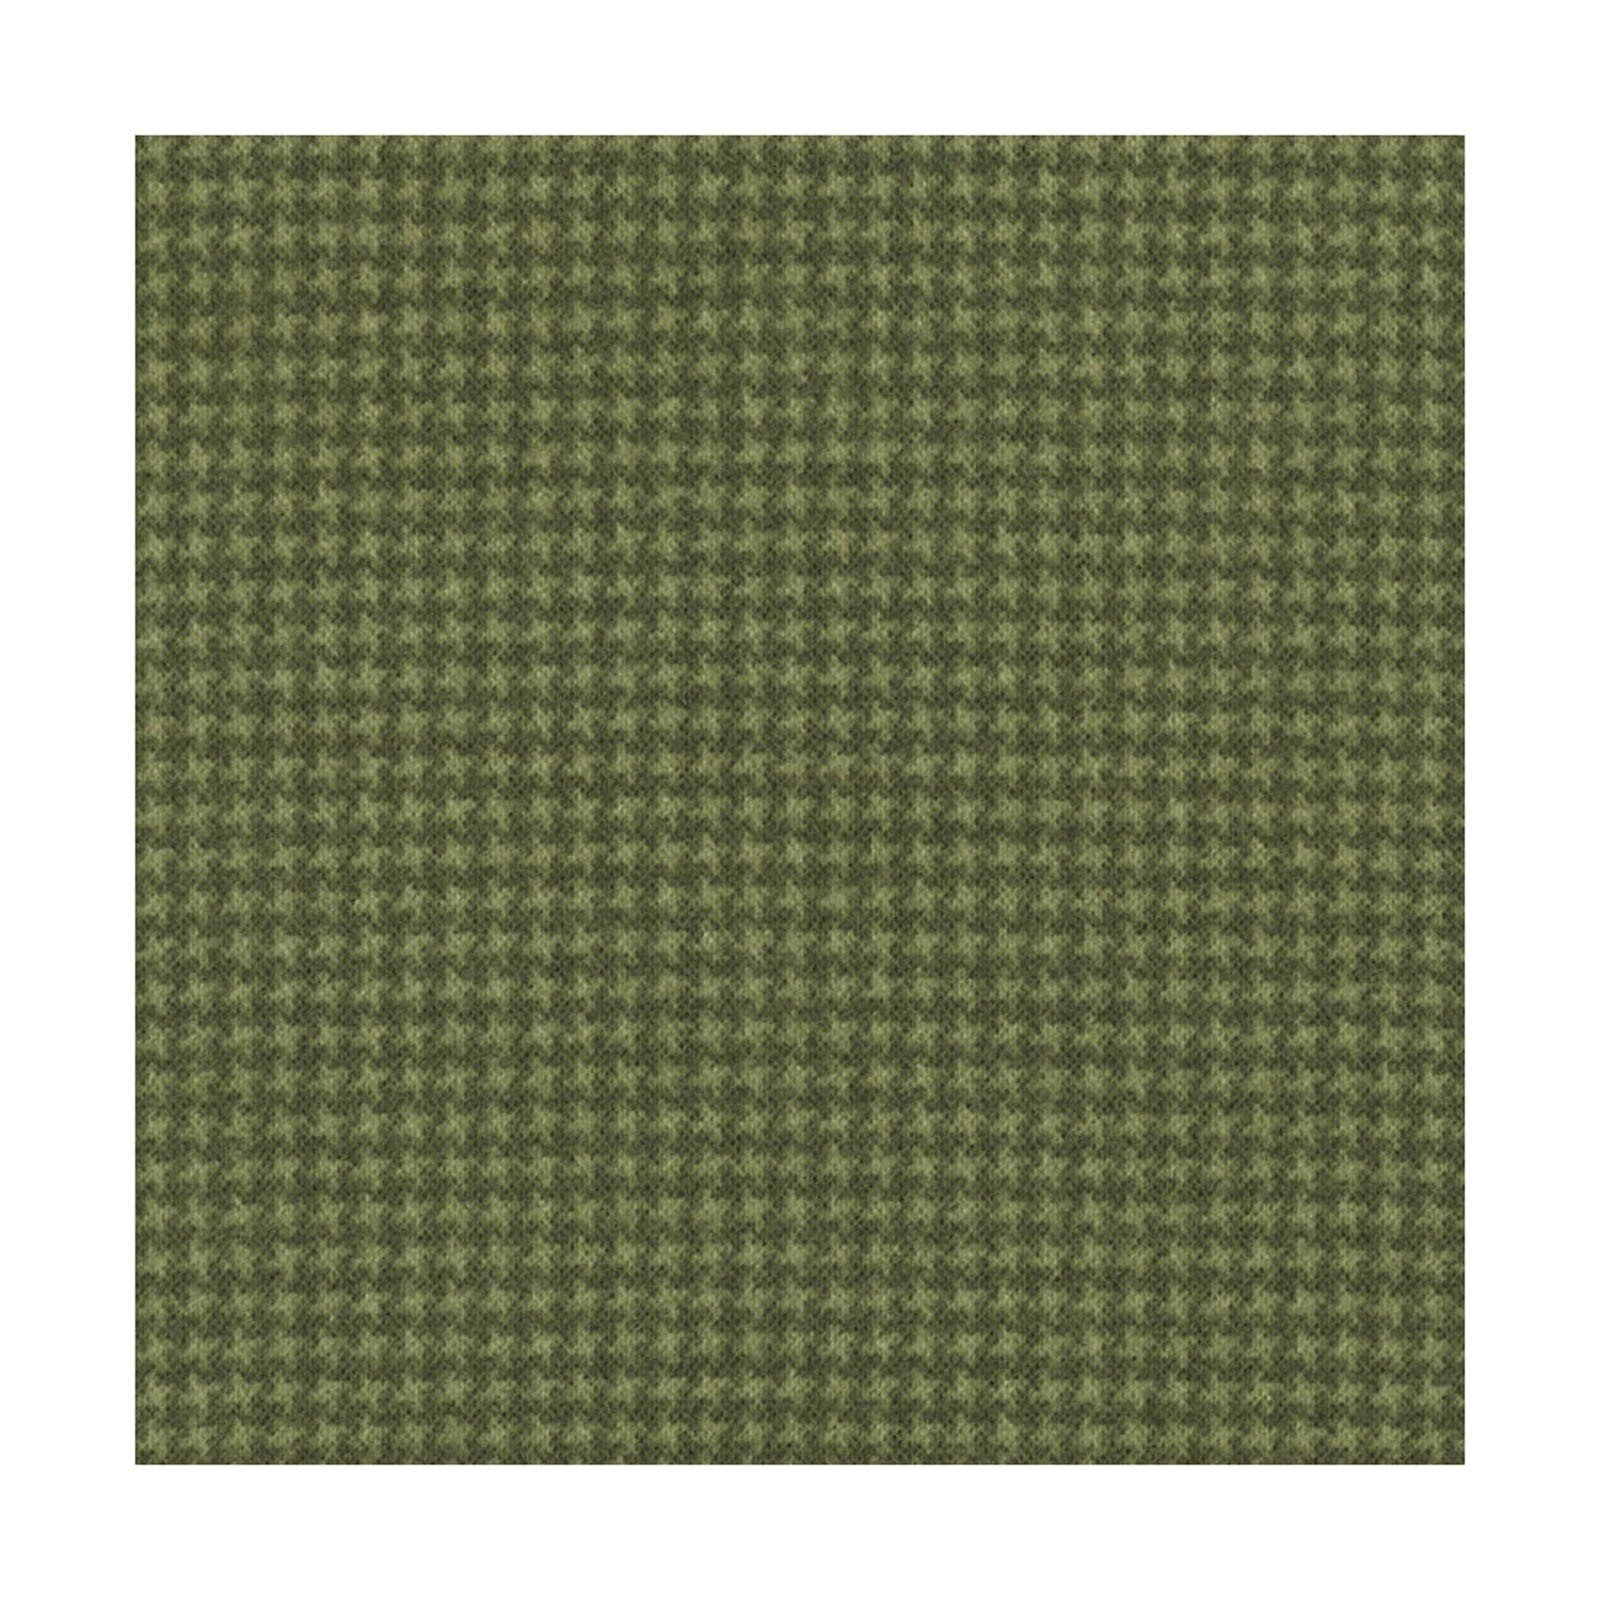 Woolies Flannel - Green Tiny Houndstooth